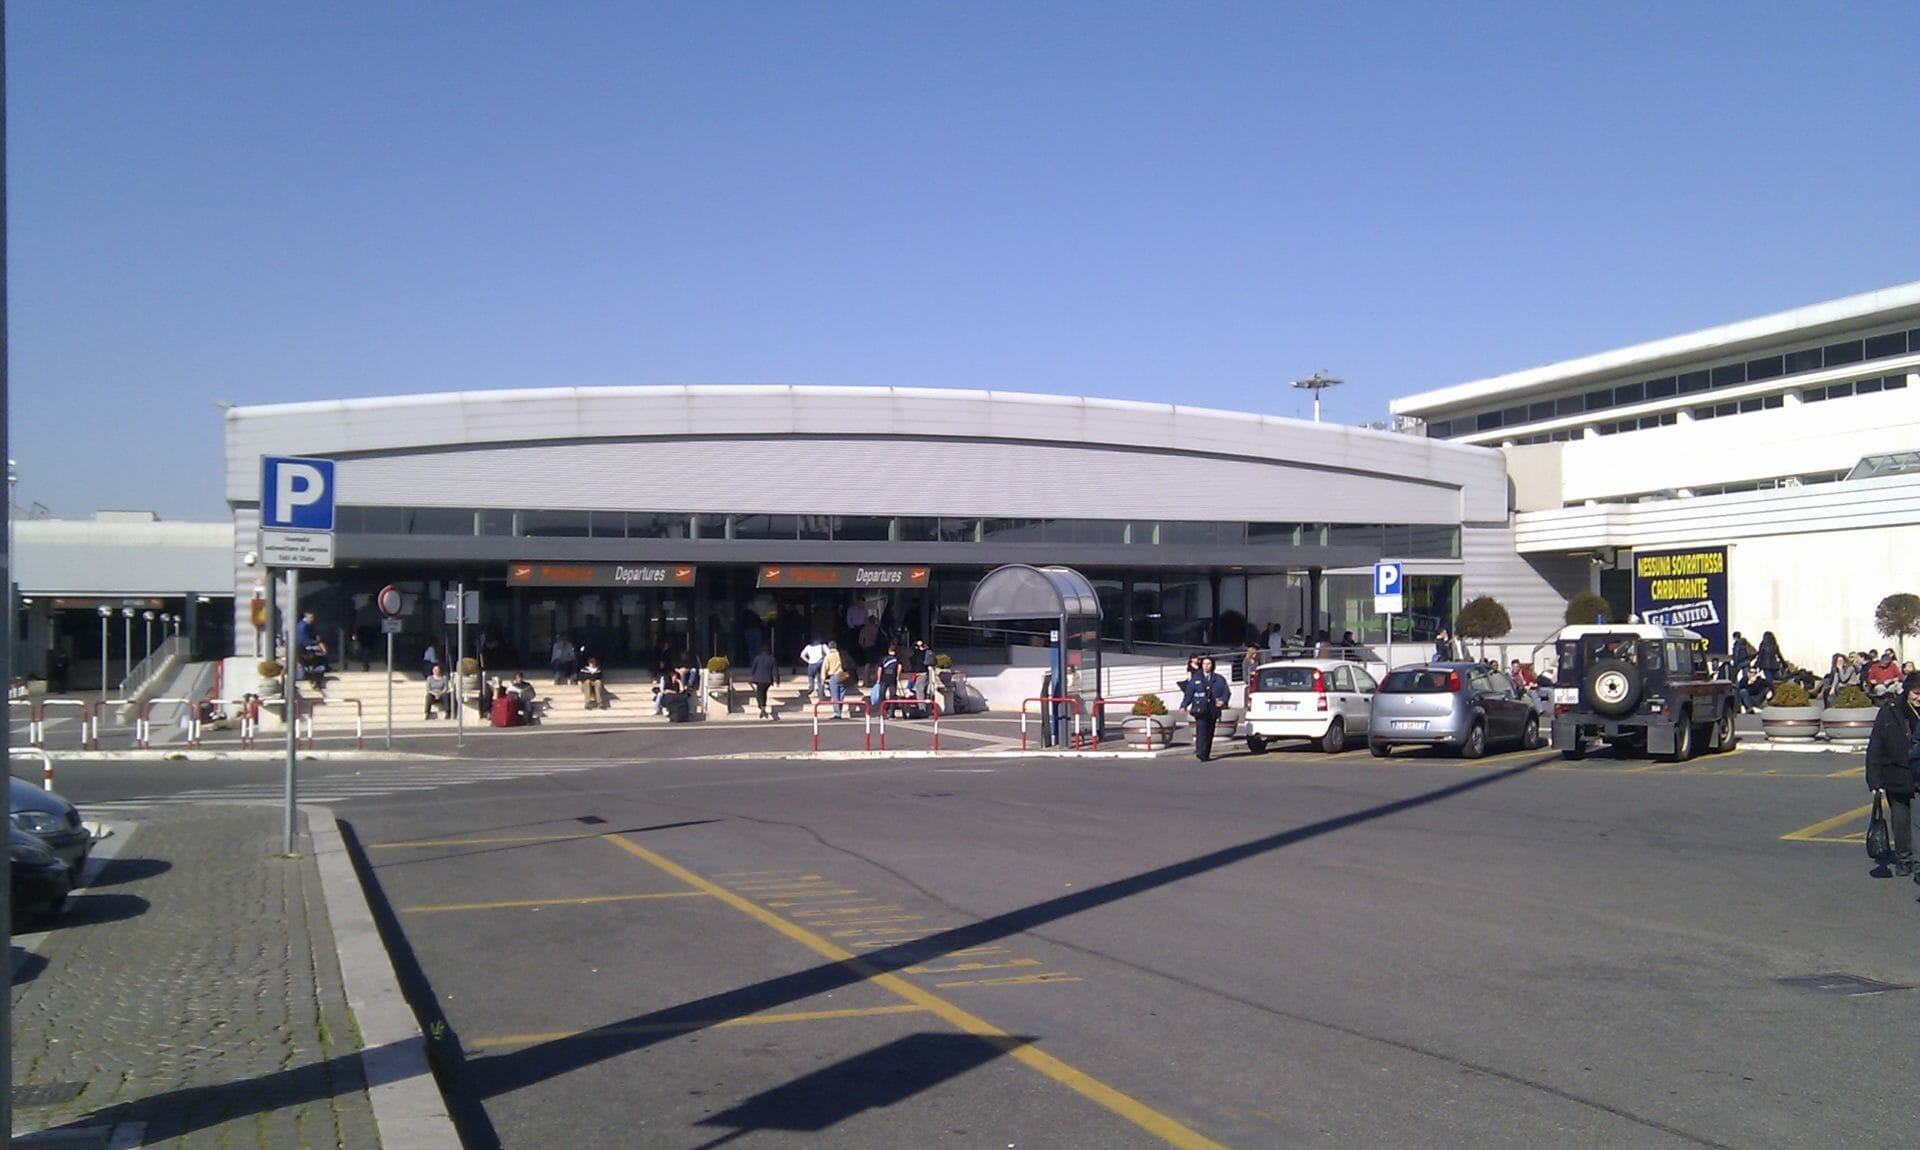 Rome international airport Ciampino